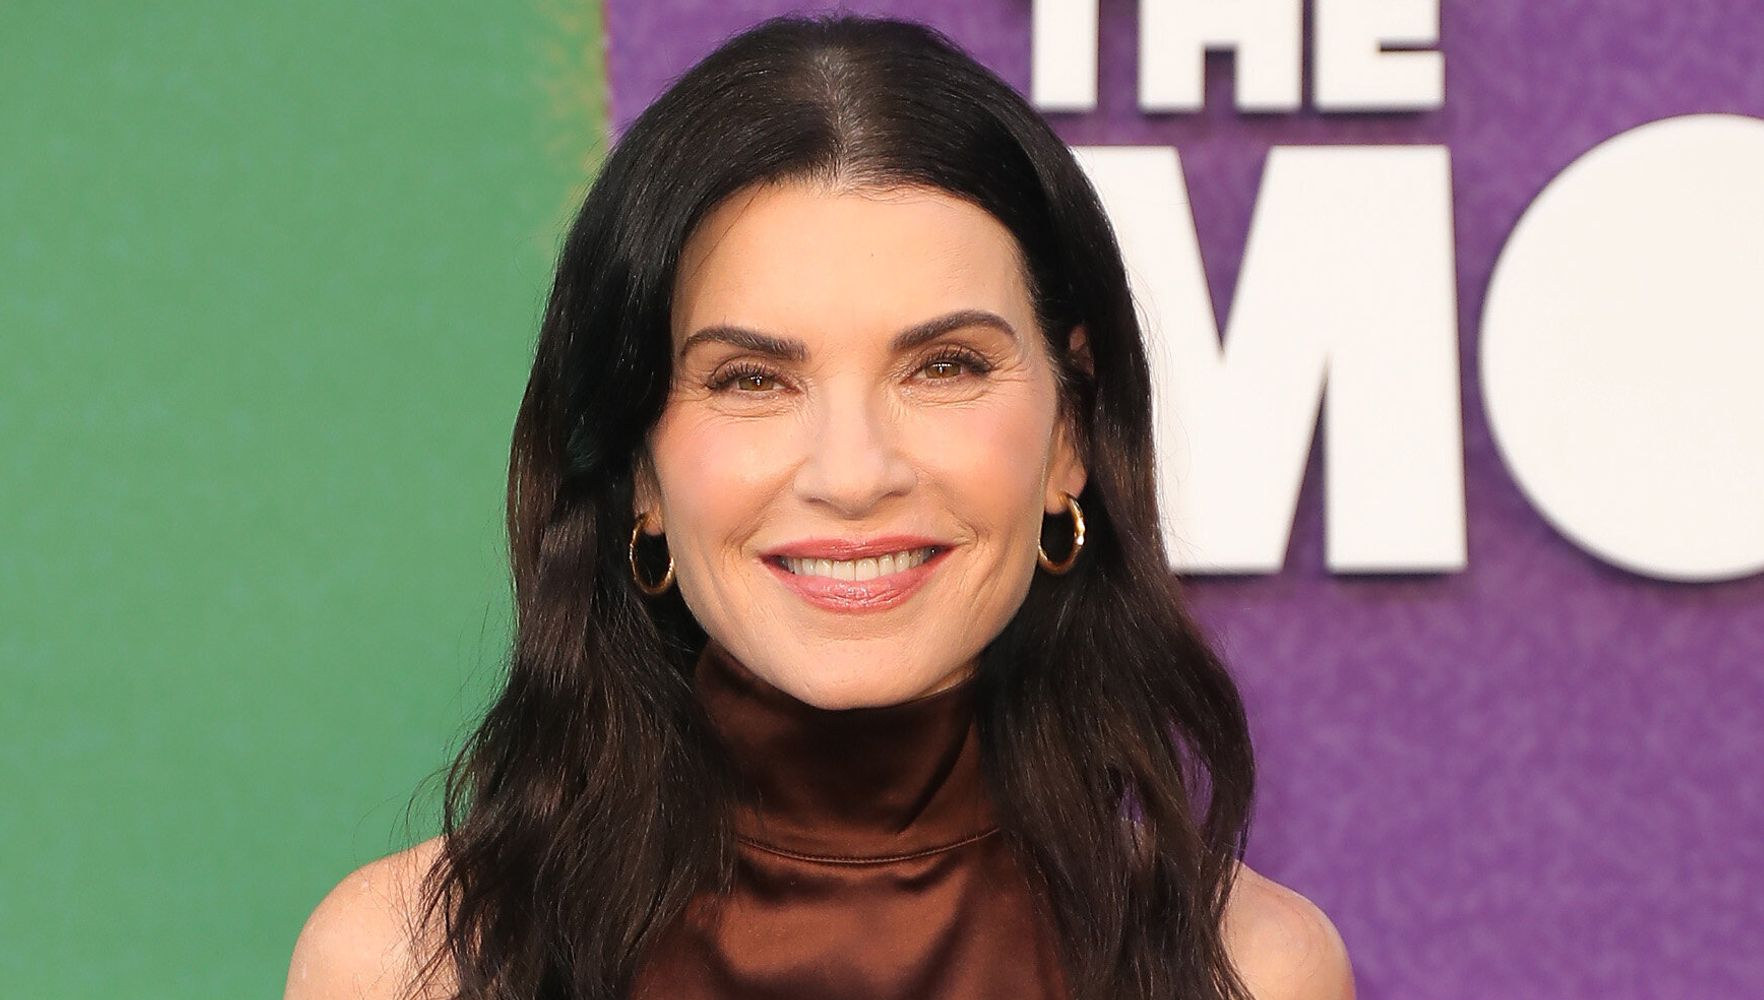 Julianna Margulies Defends Her Portrayal Of Queer 'Morning Show' Character